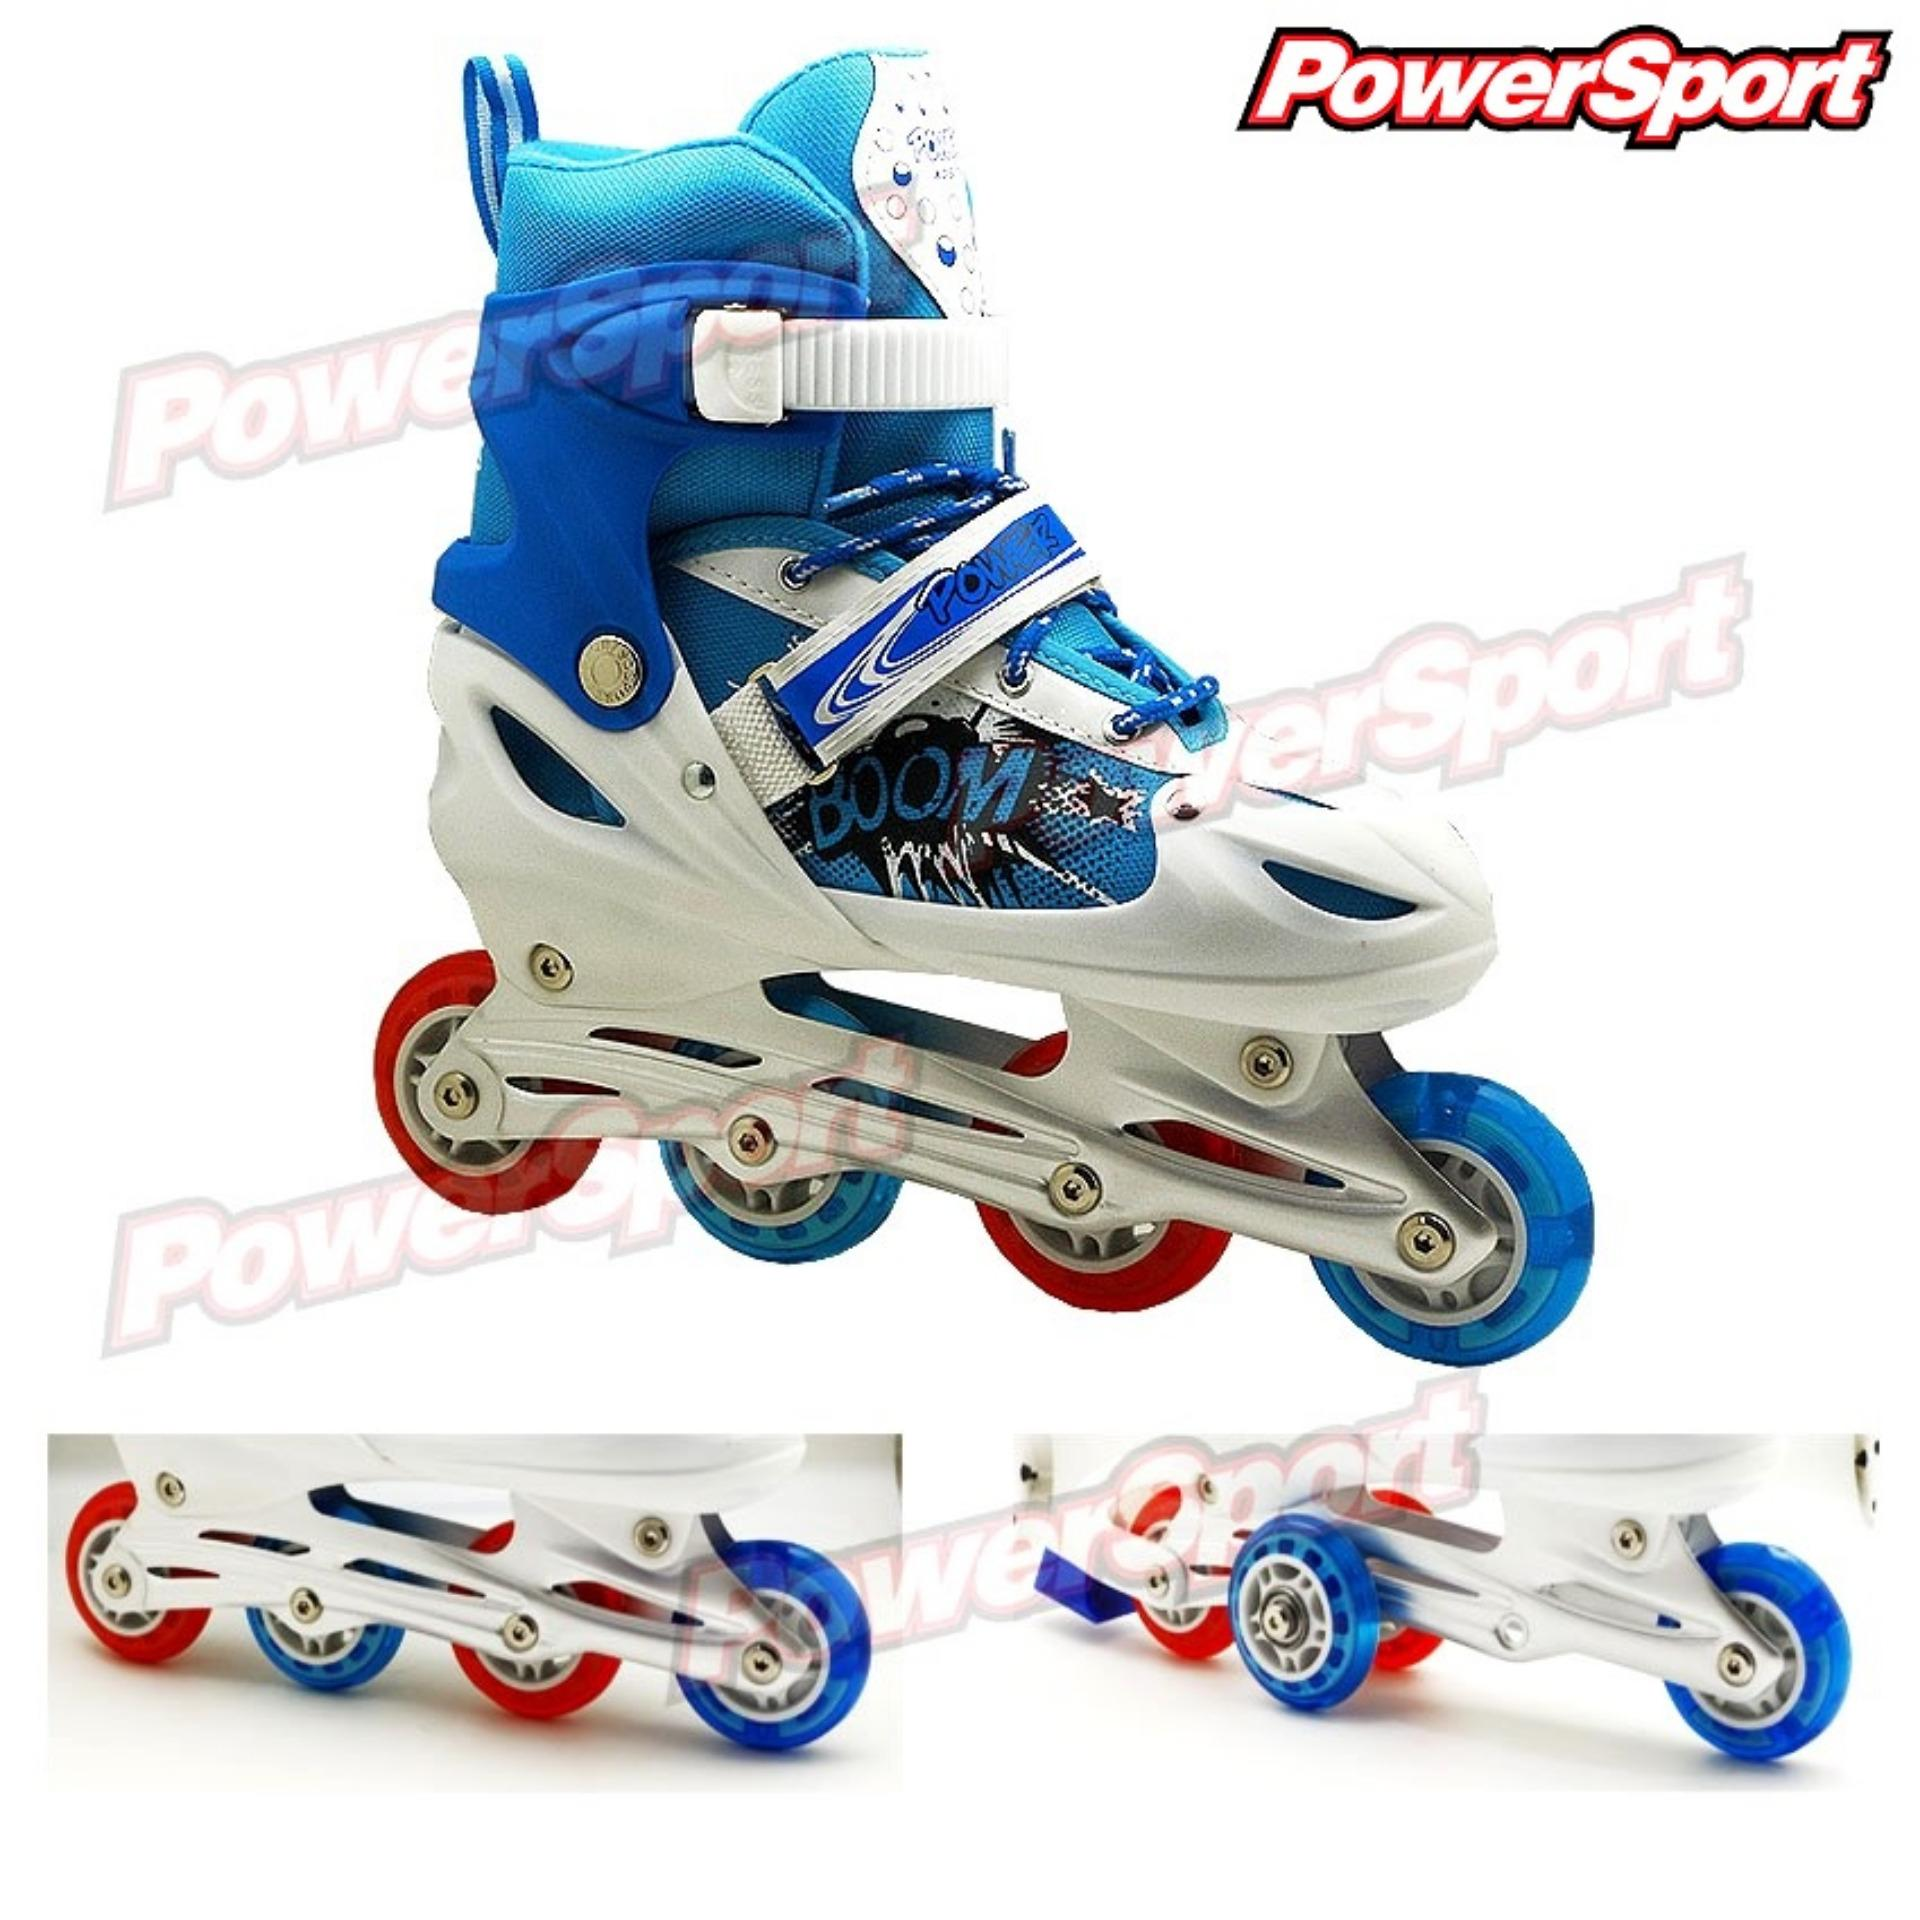 Review Powersport Boom Inline Skate Sepatu Roda Adjustable Wheel Biru L 38 42 Power Sport